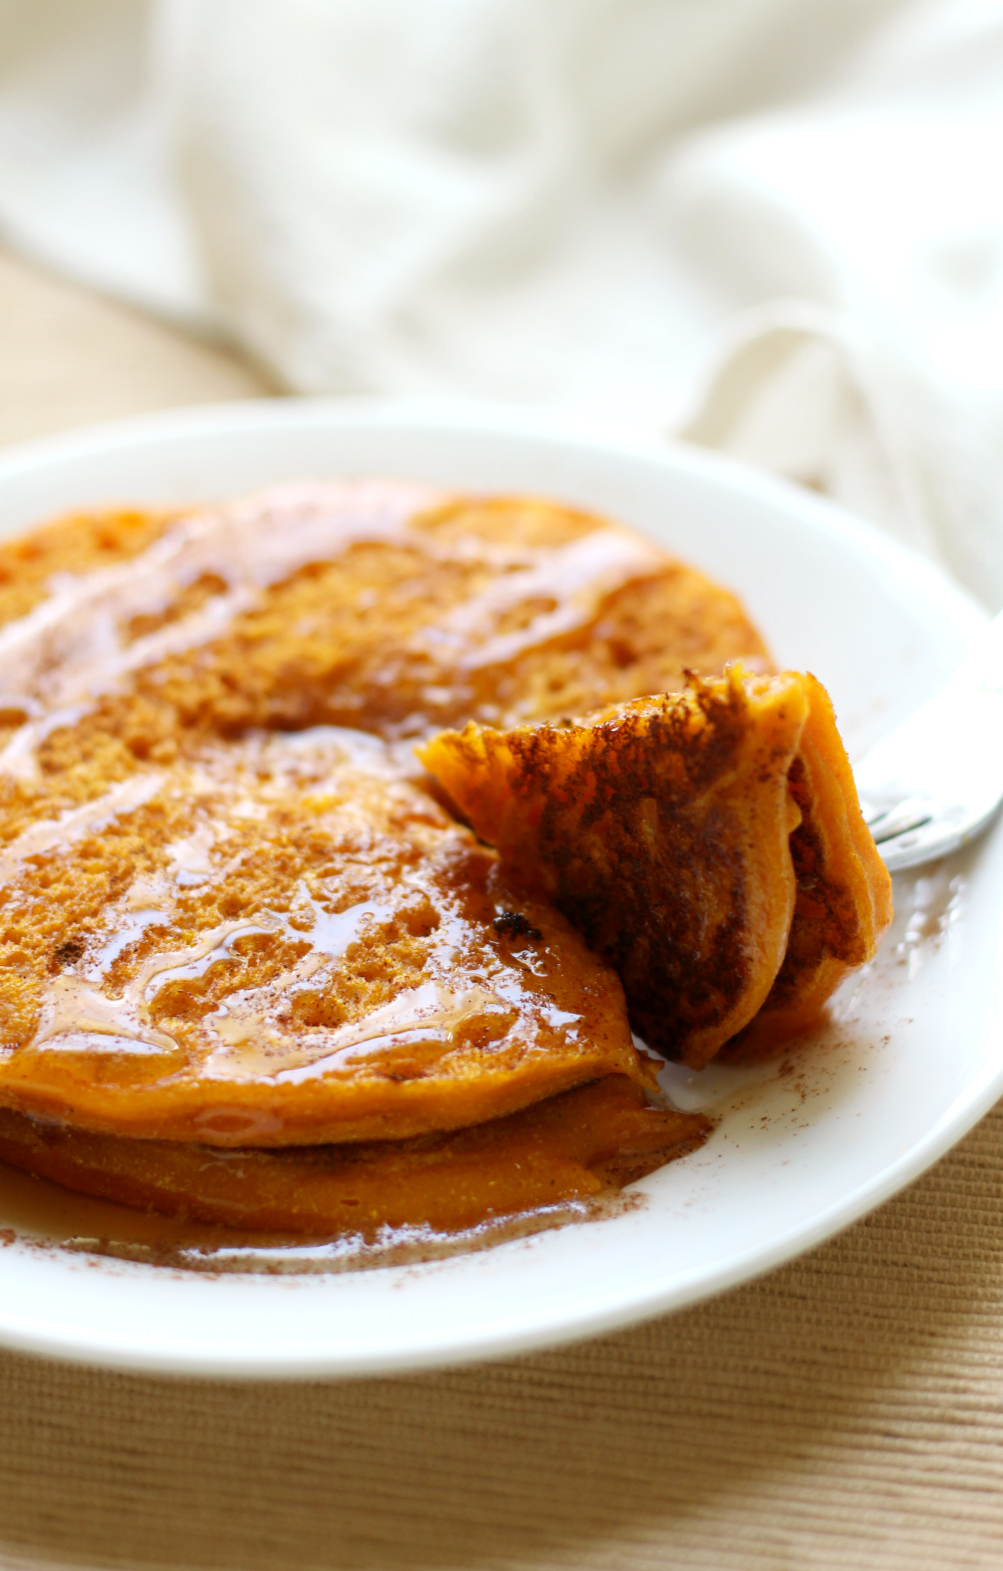 Pumpkin Pancakes | Strength and Sunshine @RebeccaGF666 Simple and delicious pumpkin pancakes in a snap! Gluten-free, vegan, and single-serve, these pancakes are healthy and make a perfect seasonal breakfast recipe any day of the week!